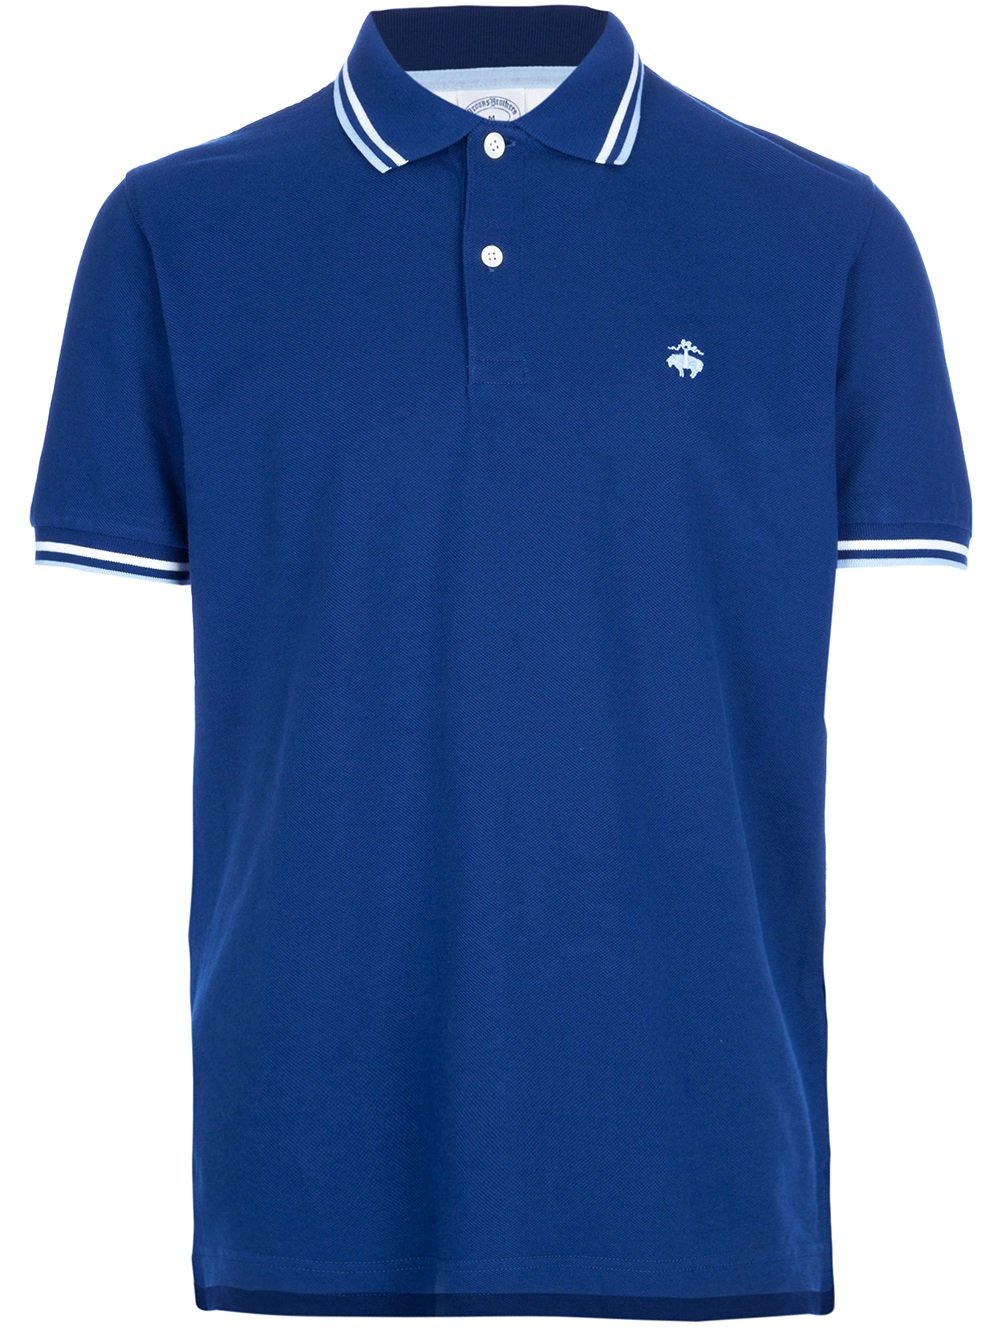 Brooks brothers classic polo shirt in blue for men navy for Brooks brothers shirt size guide